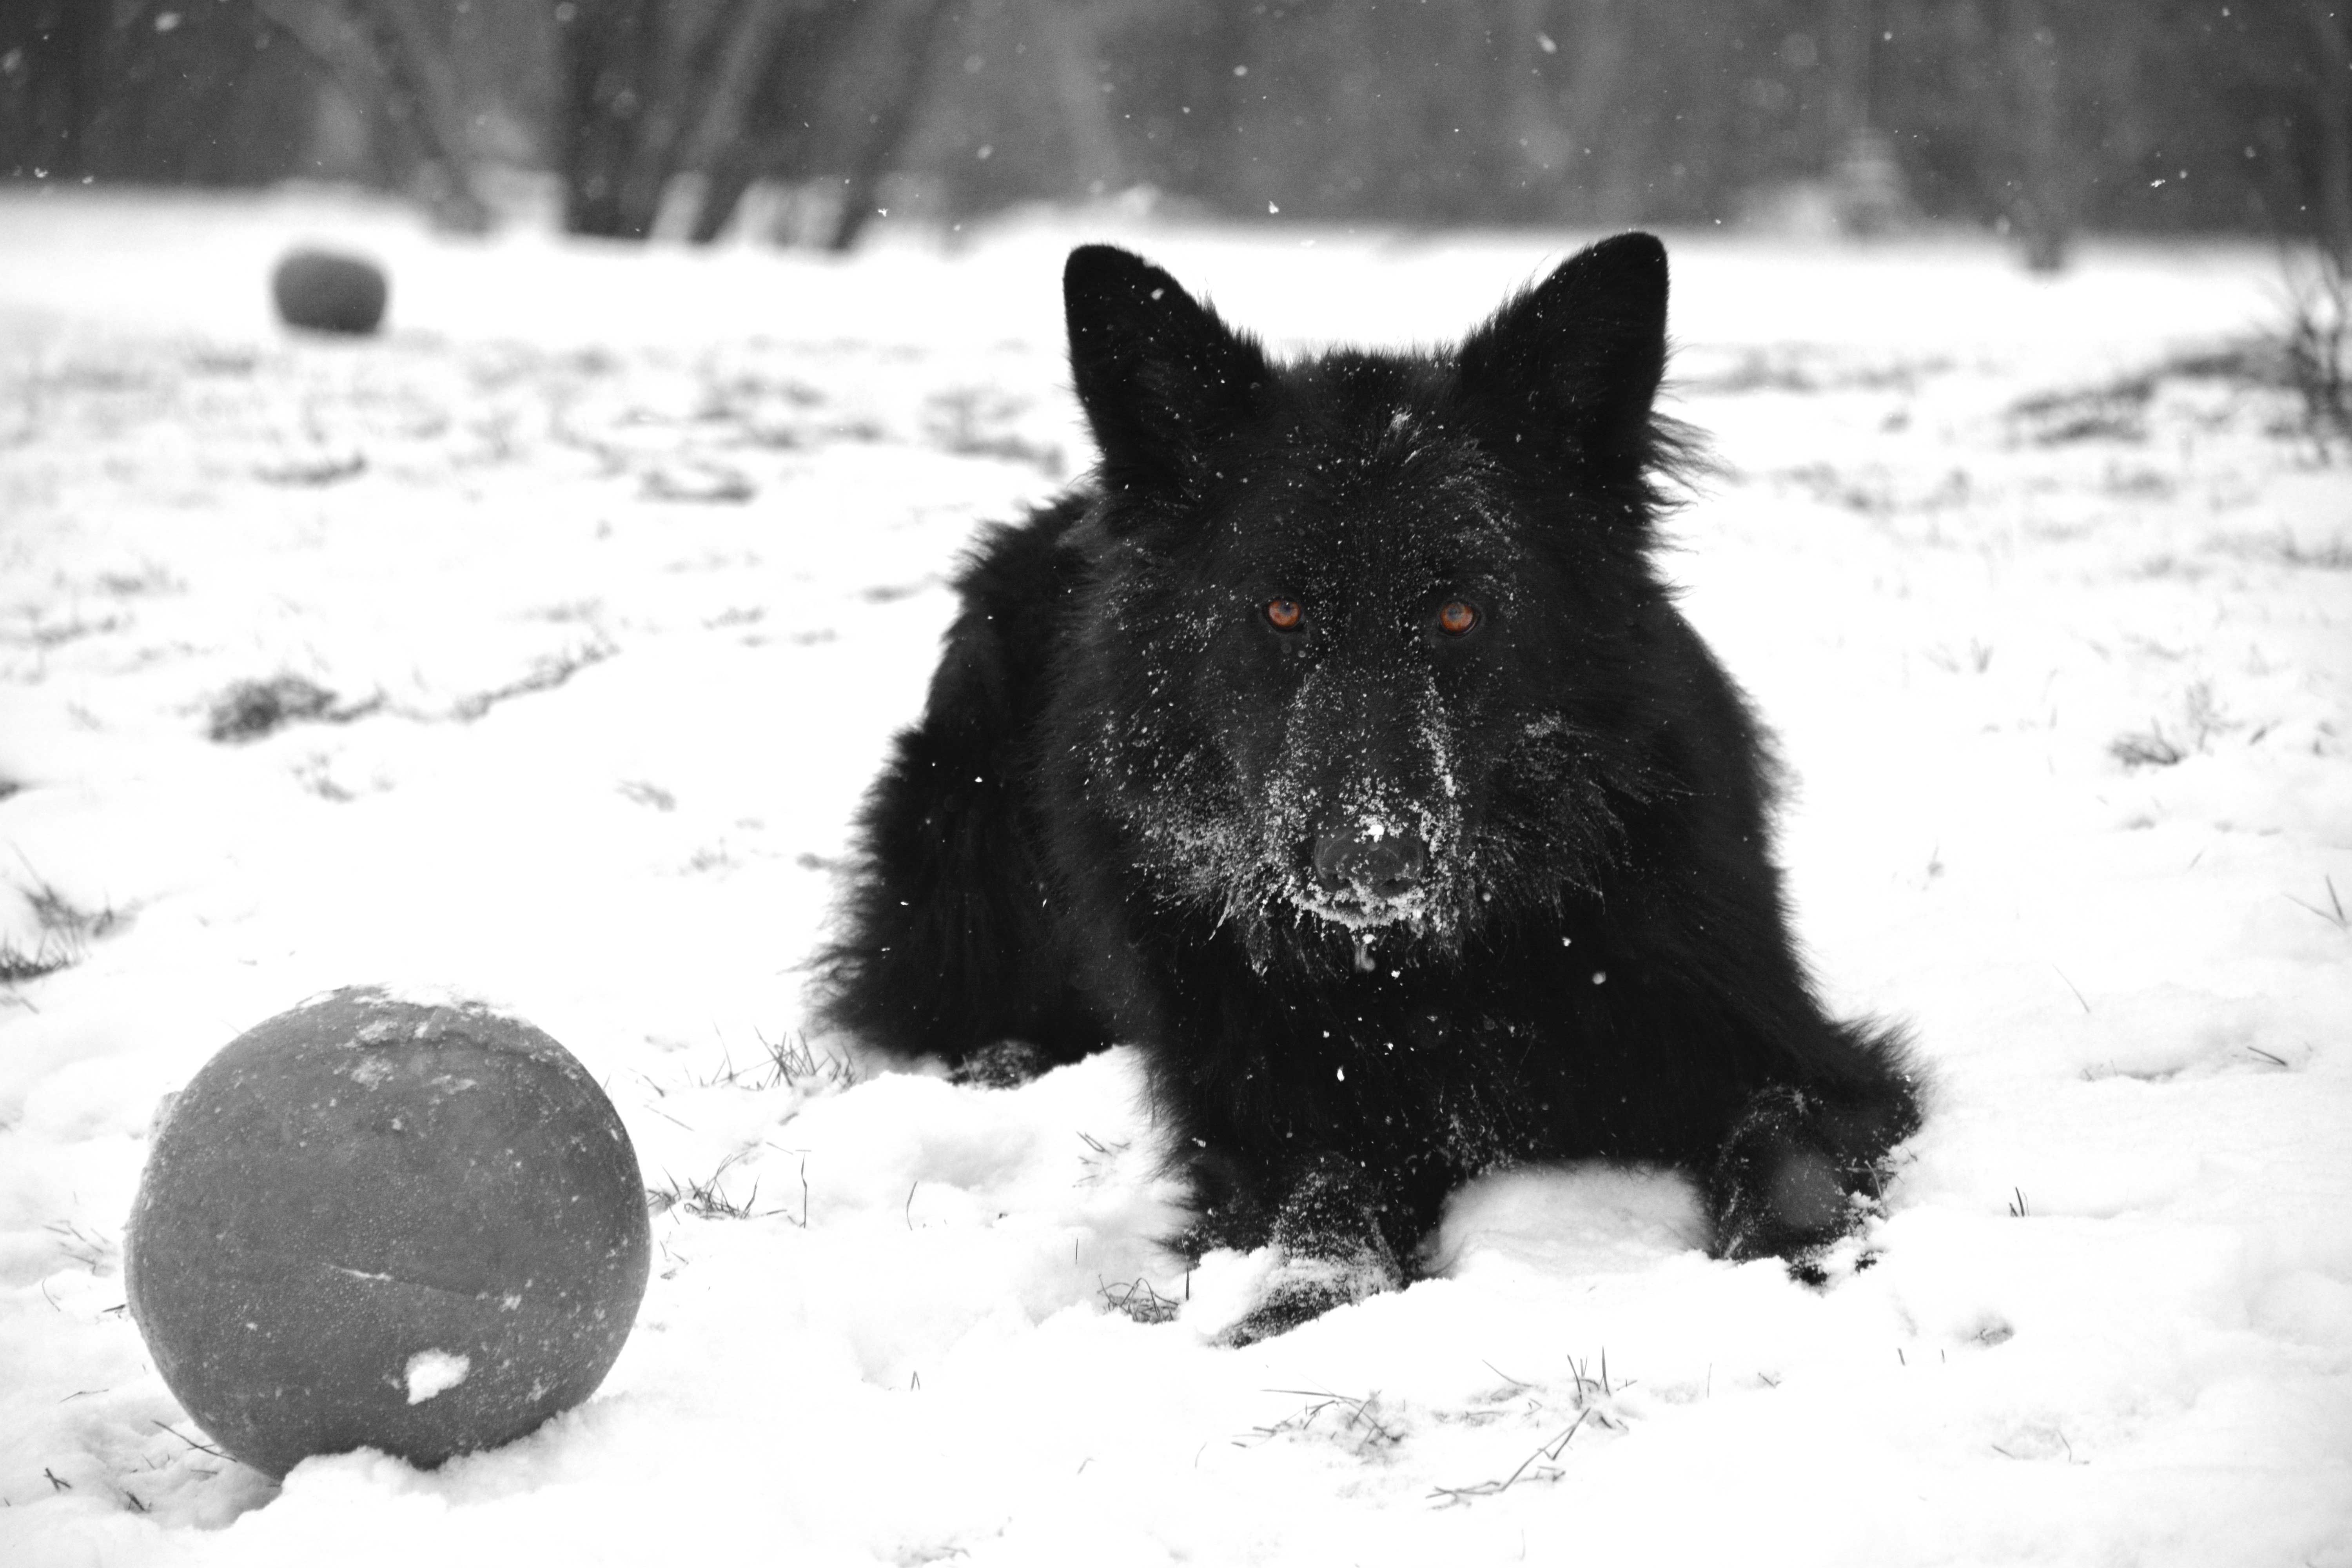 My girl Shadow enjoying the snow - Solid Black Long Coated GSD. #GSD